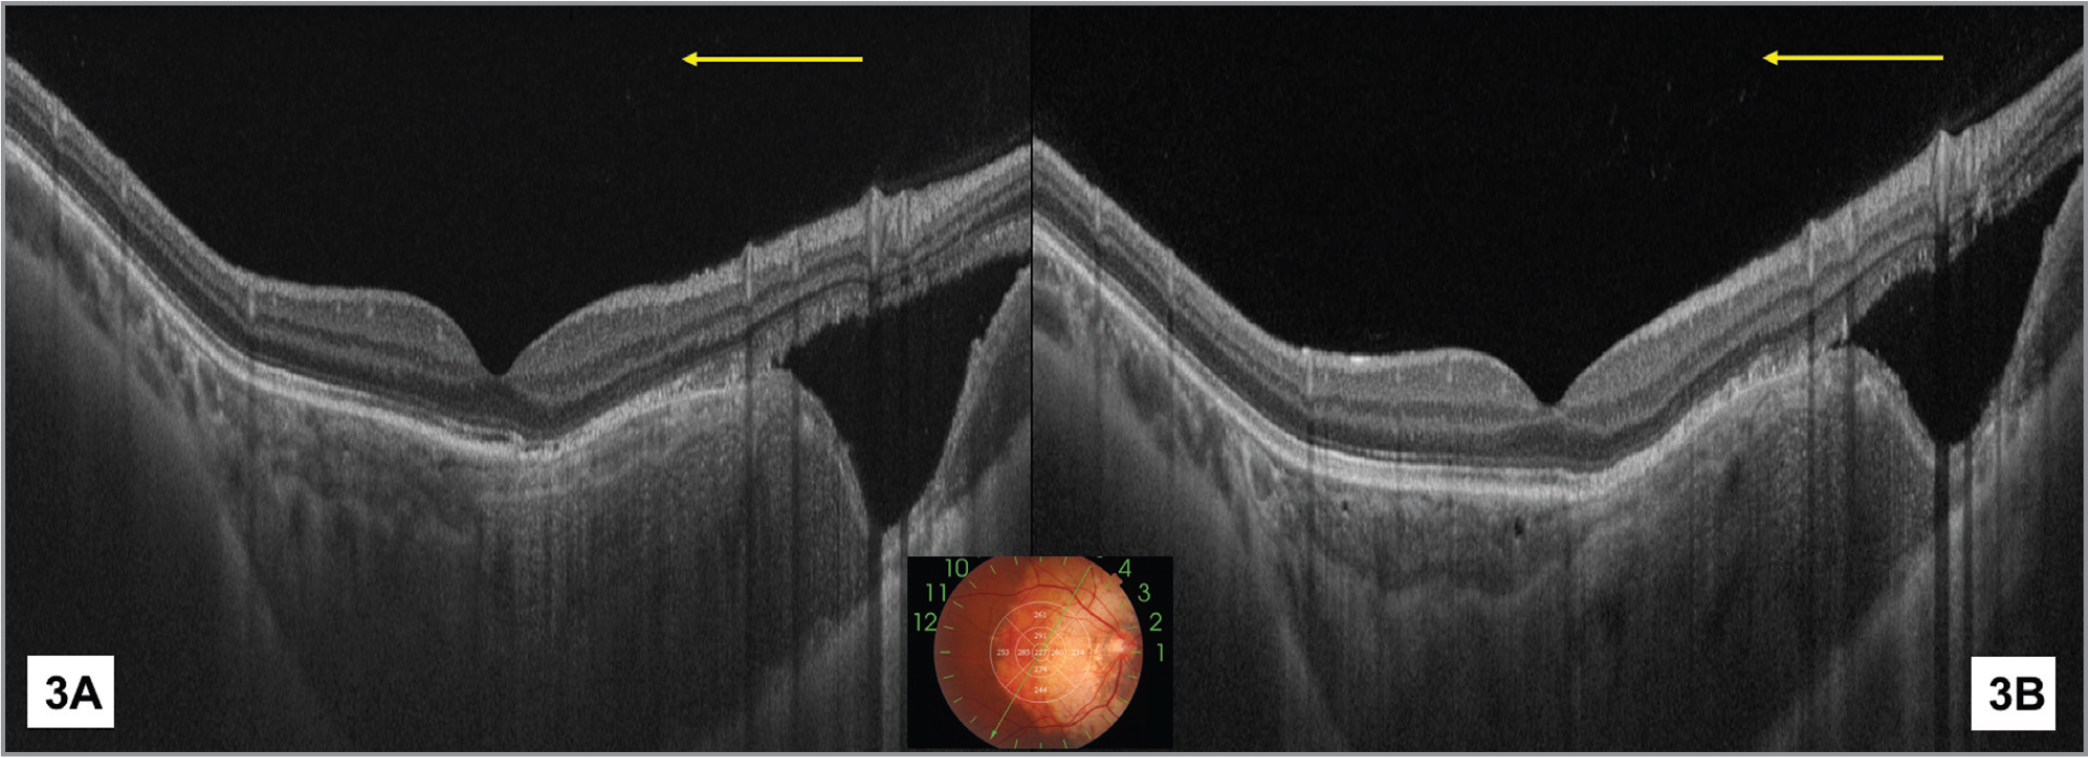 (A) Pre-injection optical coherence tomography (OCT) showing focal deeply excavated choroid adjoining the osteoma edge with neurosensory retina not dipping in this depression. There was no associated staphyloma of the sclera. (B) Post-injection OCT showed no difference in the depth of excavation, signaling it to be a preexisting structural abnormality.